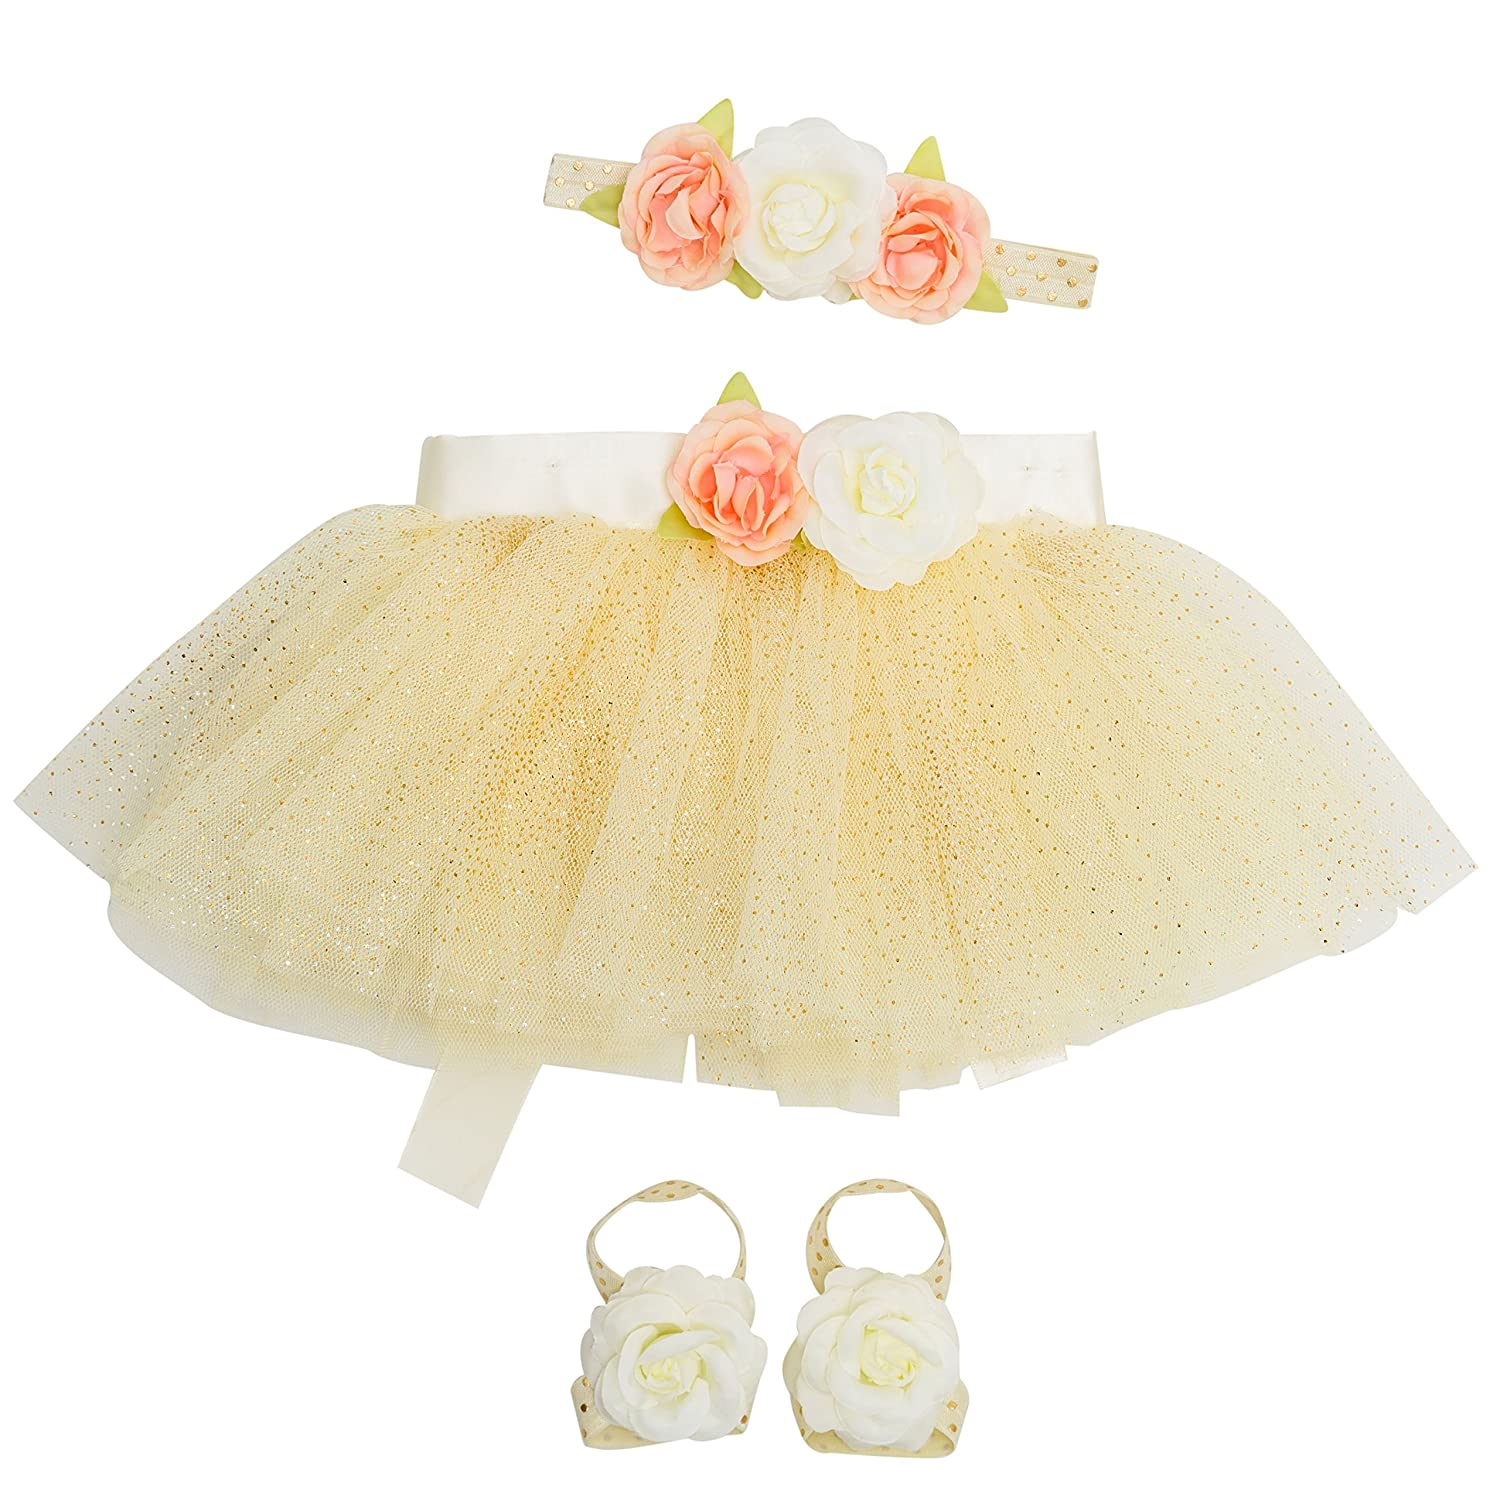 18f5d6f908 Are You Looking For Cute Milestone Photo Props For Your Baby Girl? Look no  more, because JLIKA has the perfect ballerina tulle tutu skirt set for  newborn ...